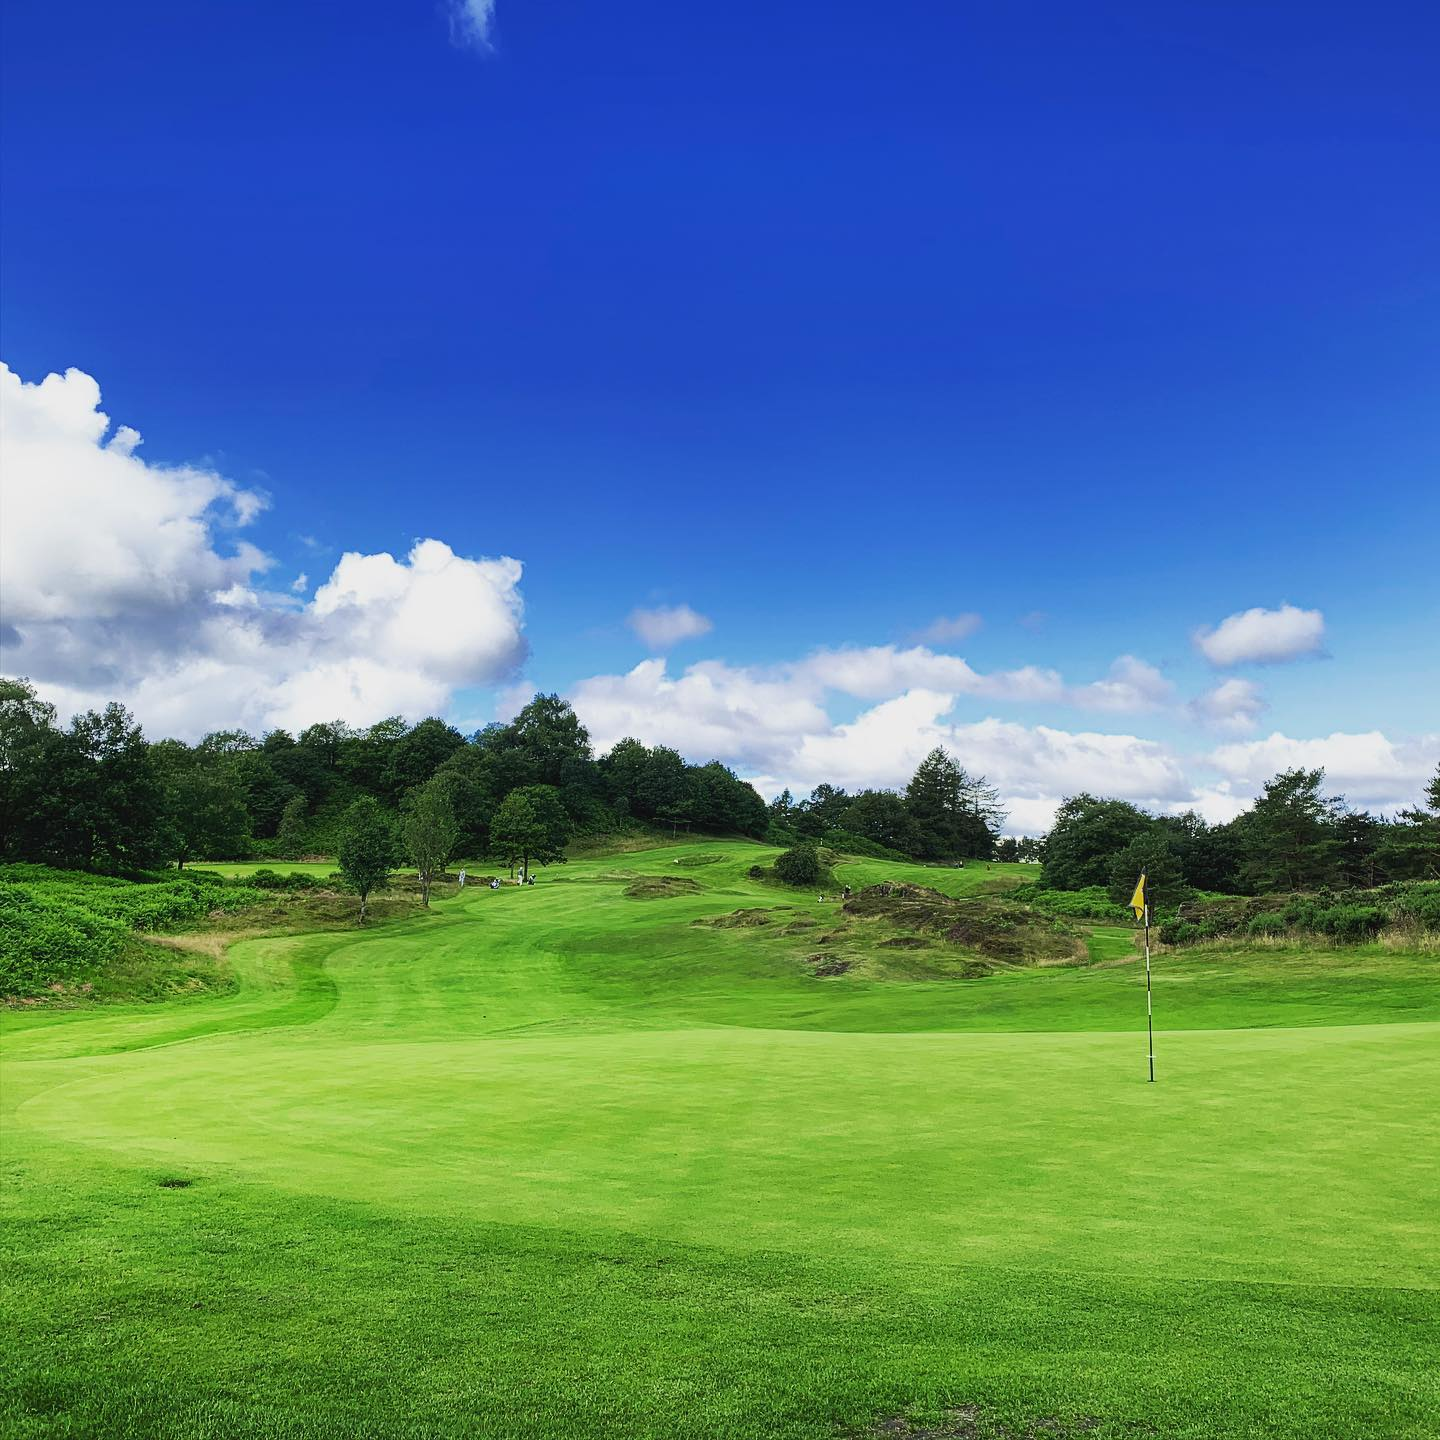 5f216e0067516-Windermere Golf  Course1